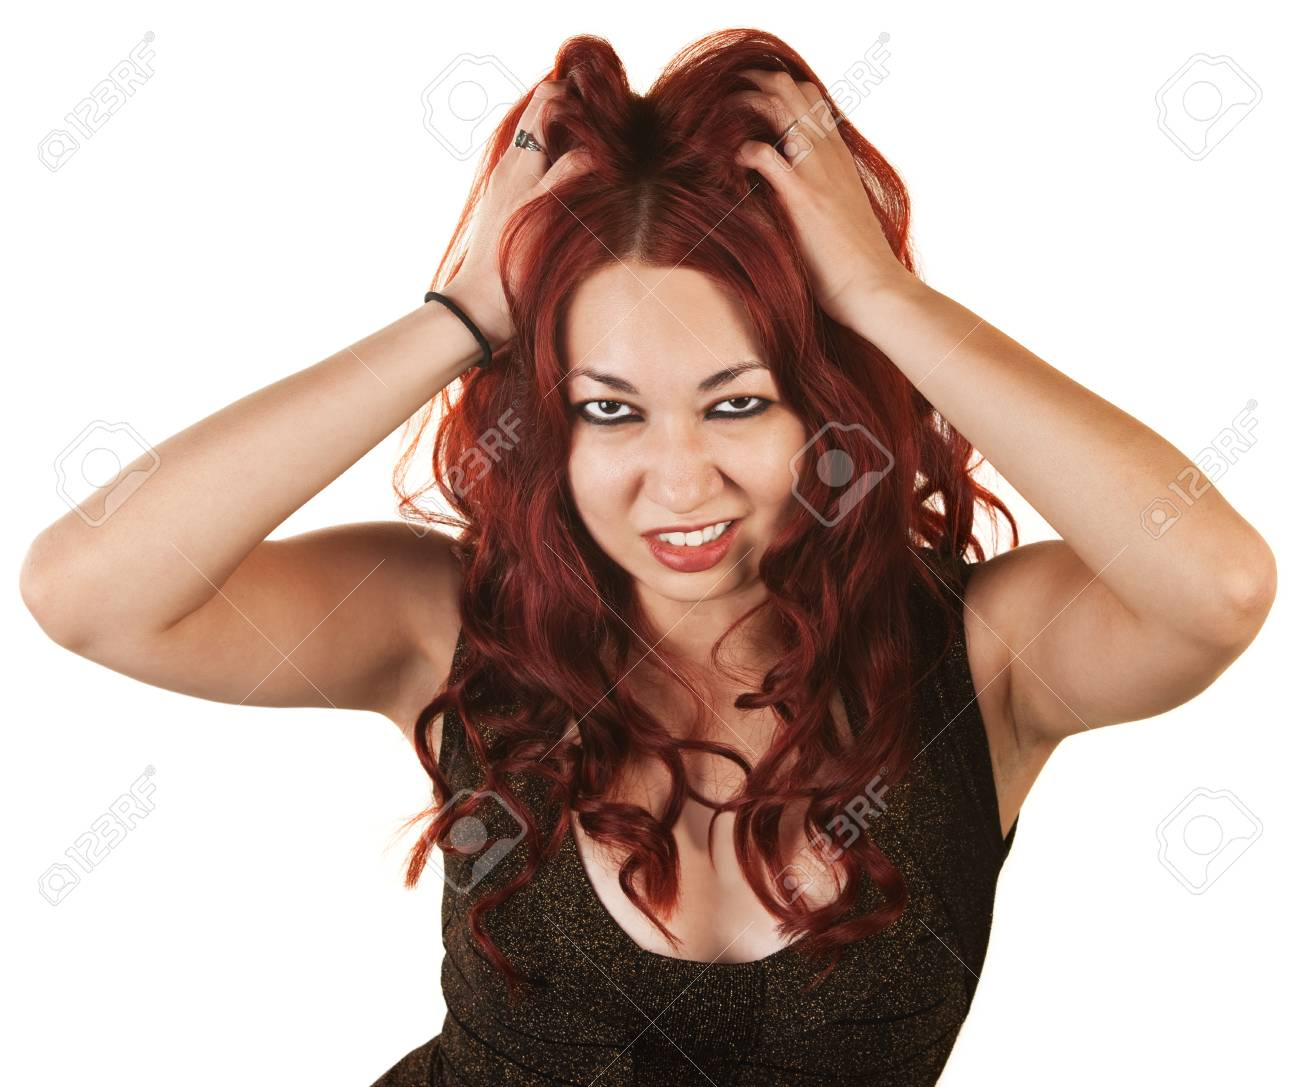 Frowning Latino female on isolated background grabbing her hair Stock Photo - 16300092